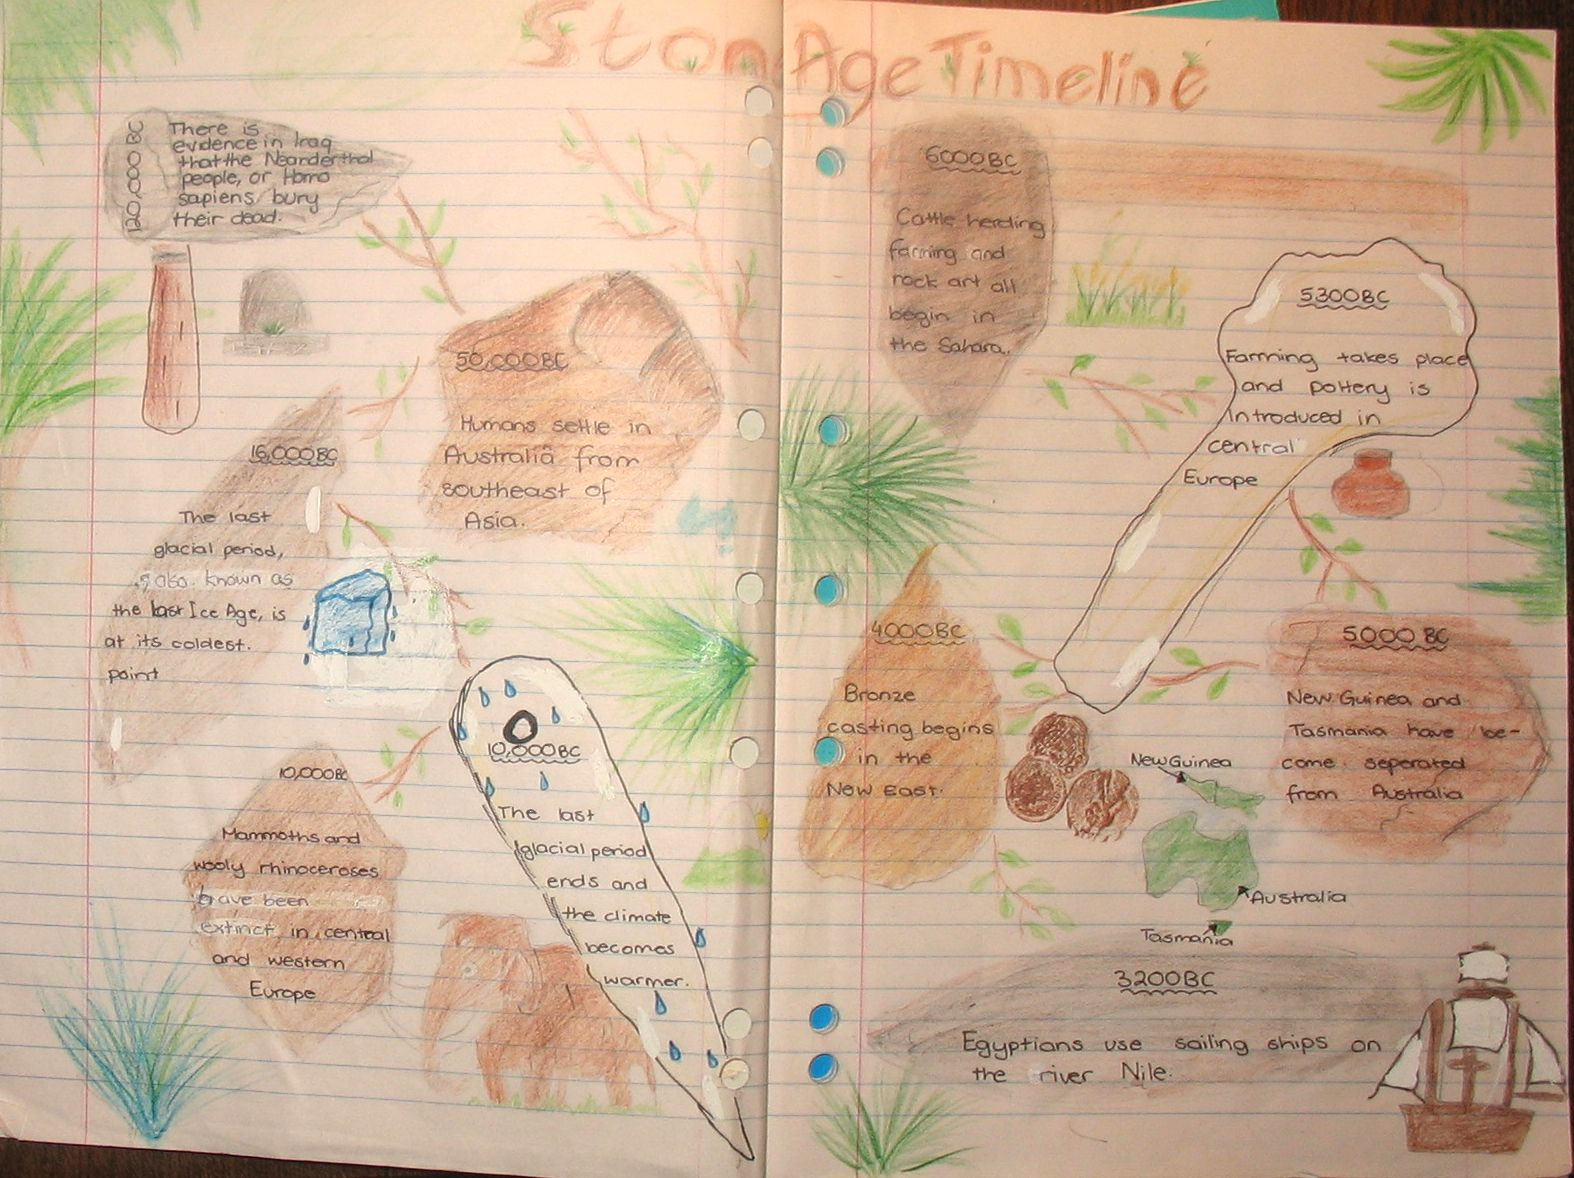 Image Result For Year7historygrblogs Files 02 Stone Age Timeline By